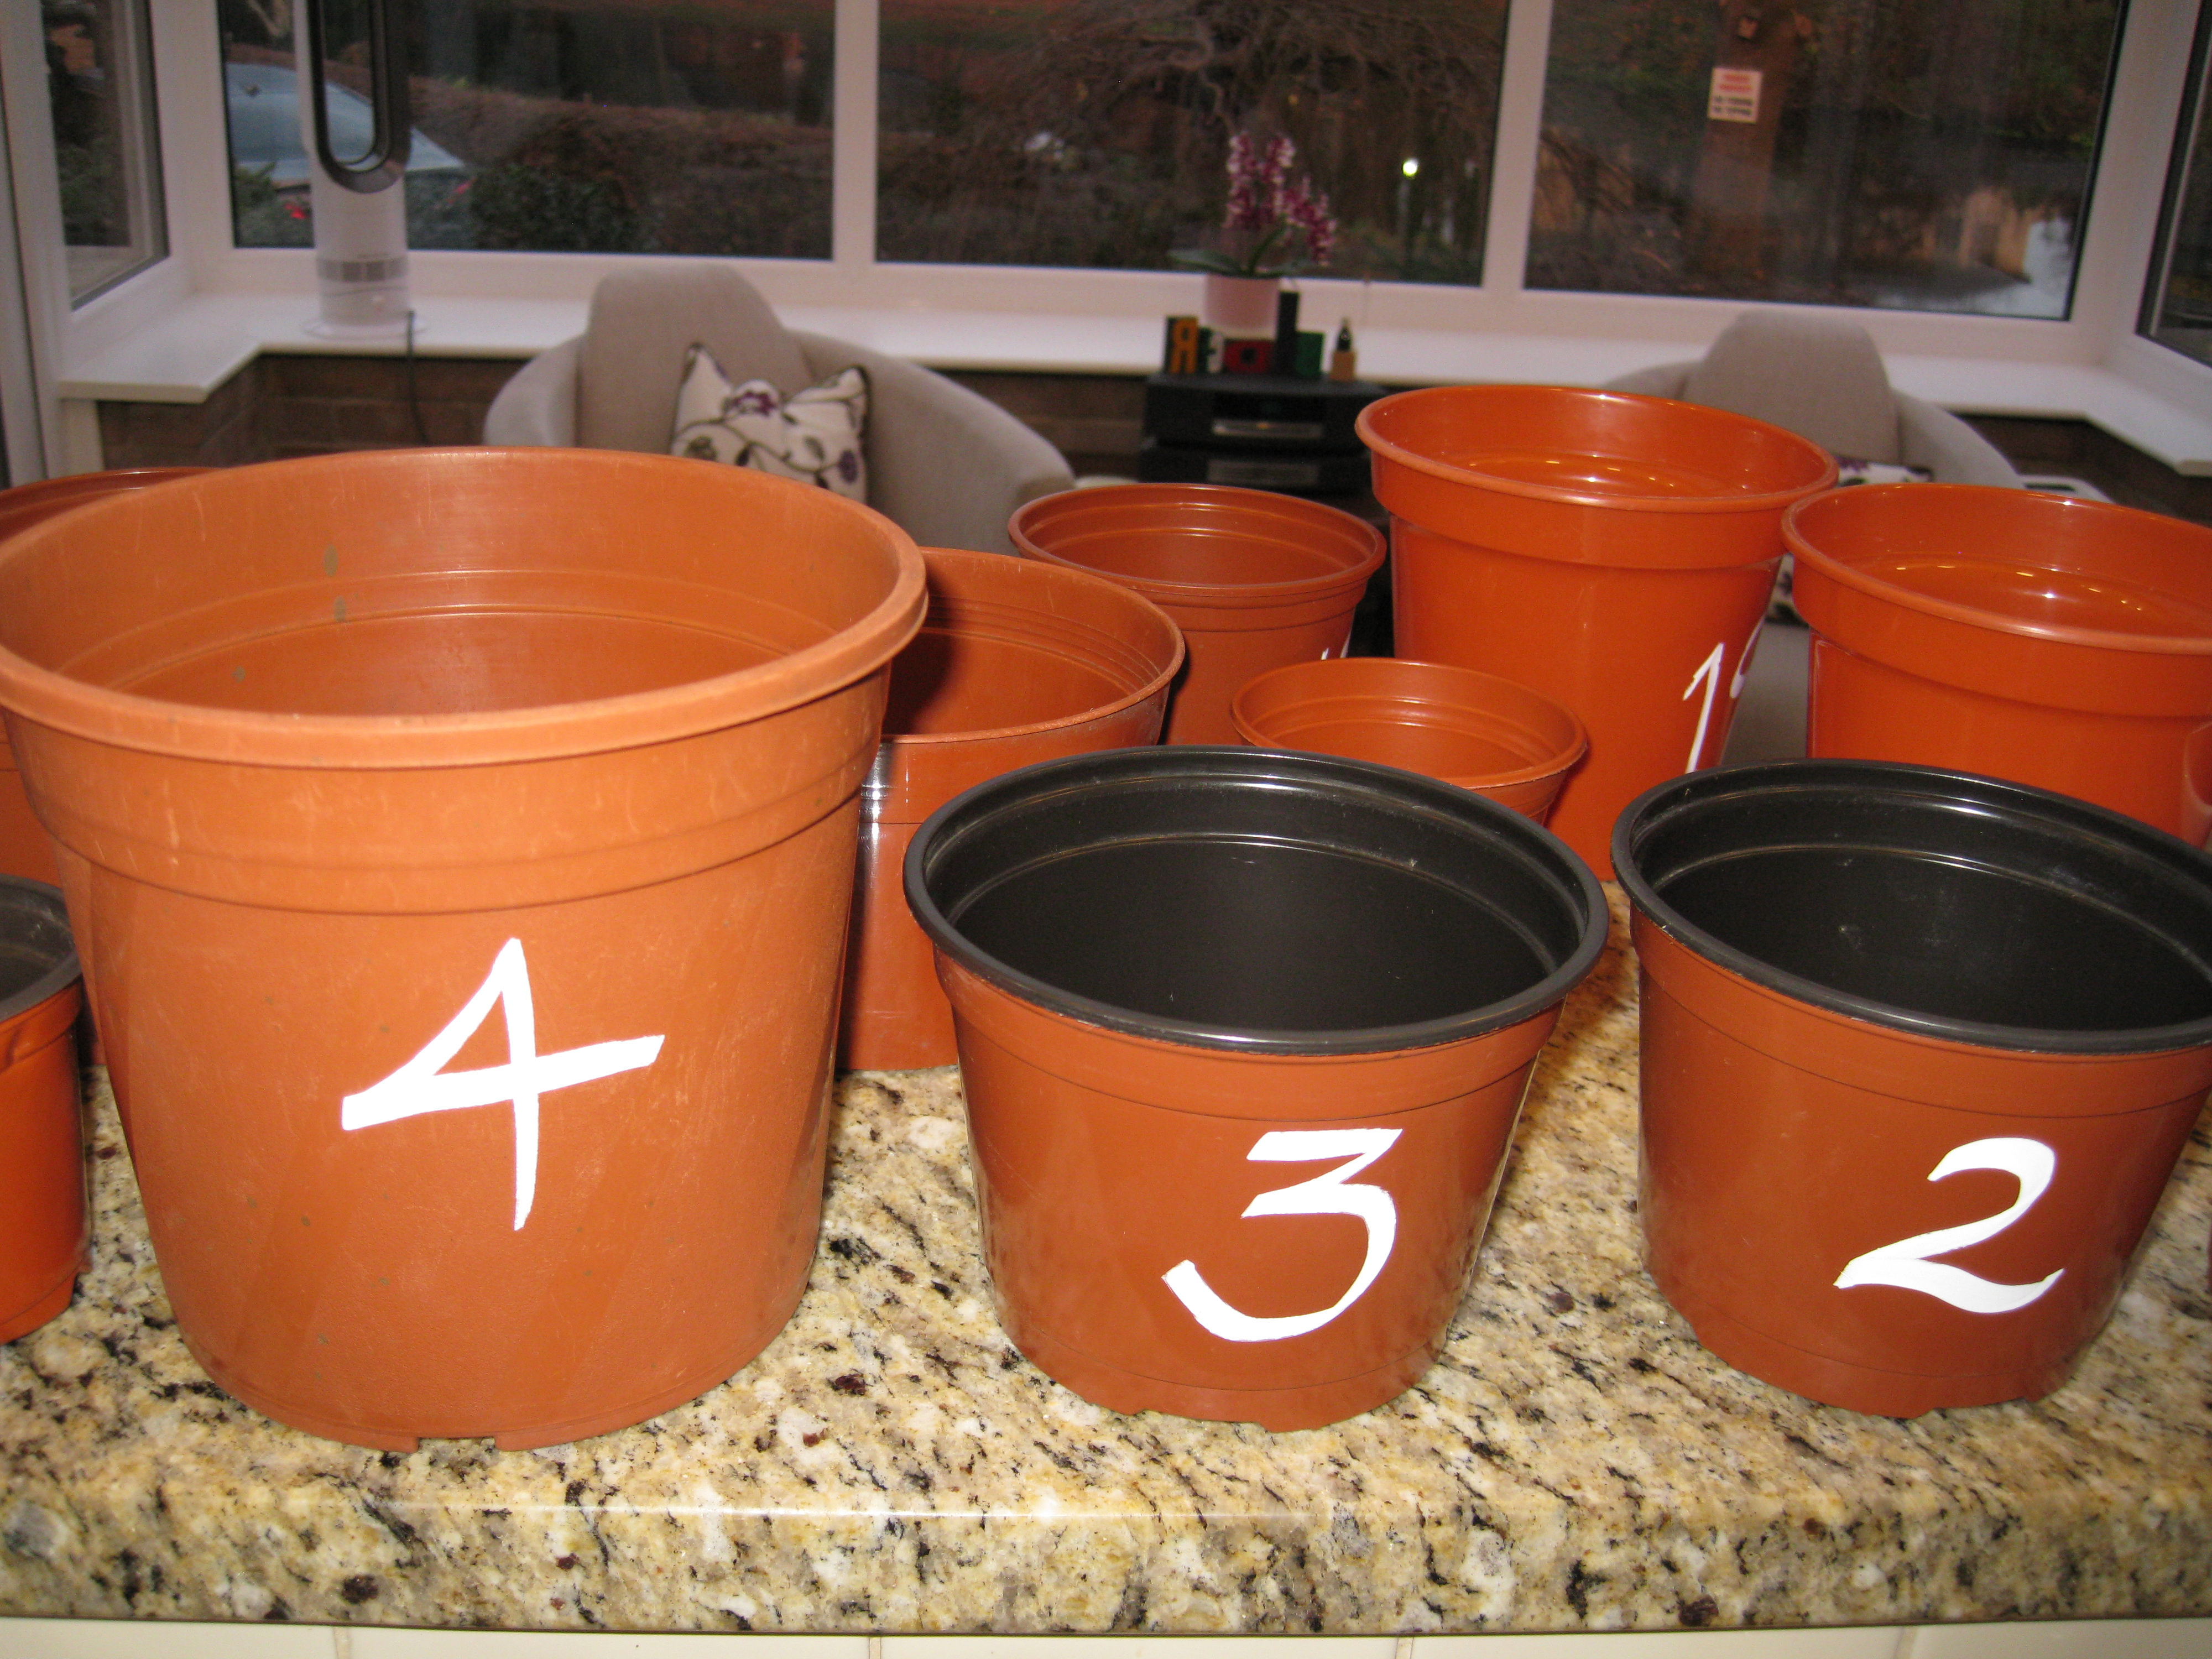 Numbered plant pots